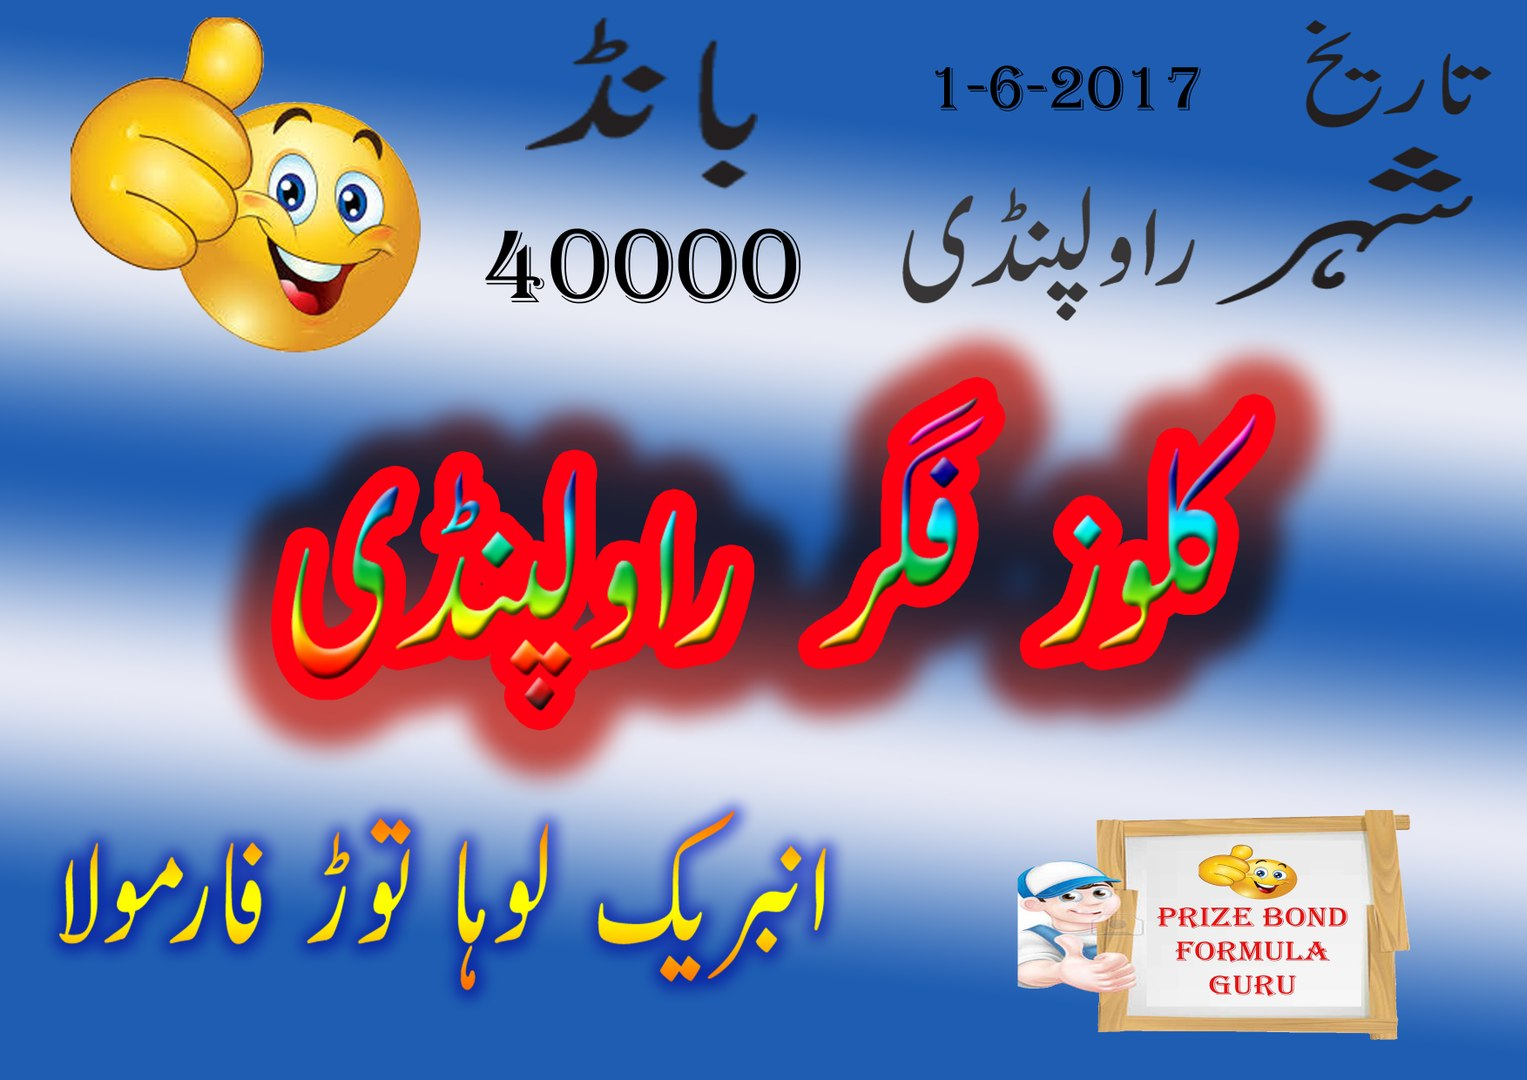 Prize Bond - Close vip Figures - Bond 40000 -Date 1-6-2017 Rawalpindi